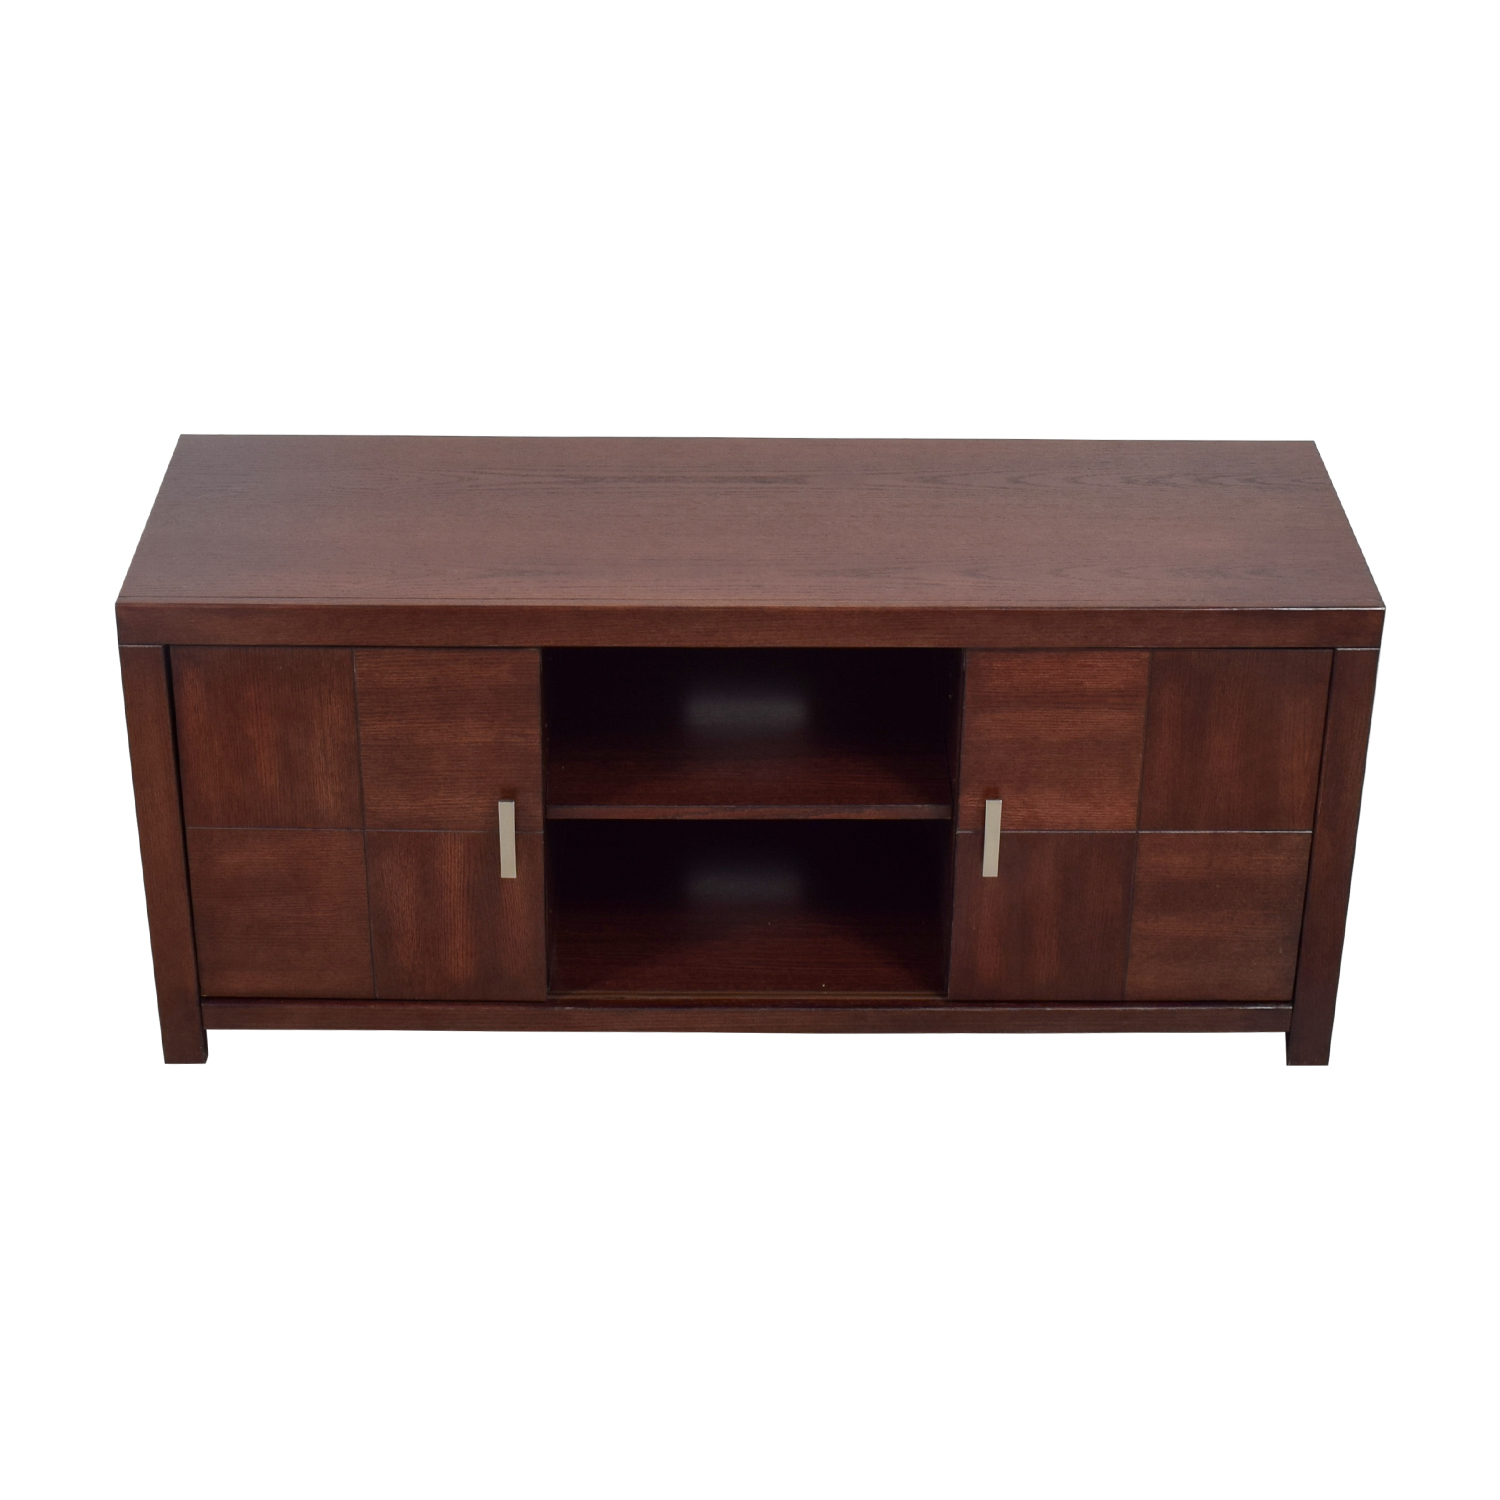 Raymour & Flanigan Raymour & Flanigan Latham Bordeaux Media Console dimensions